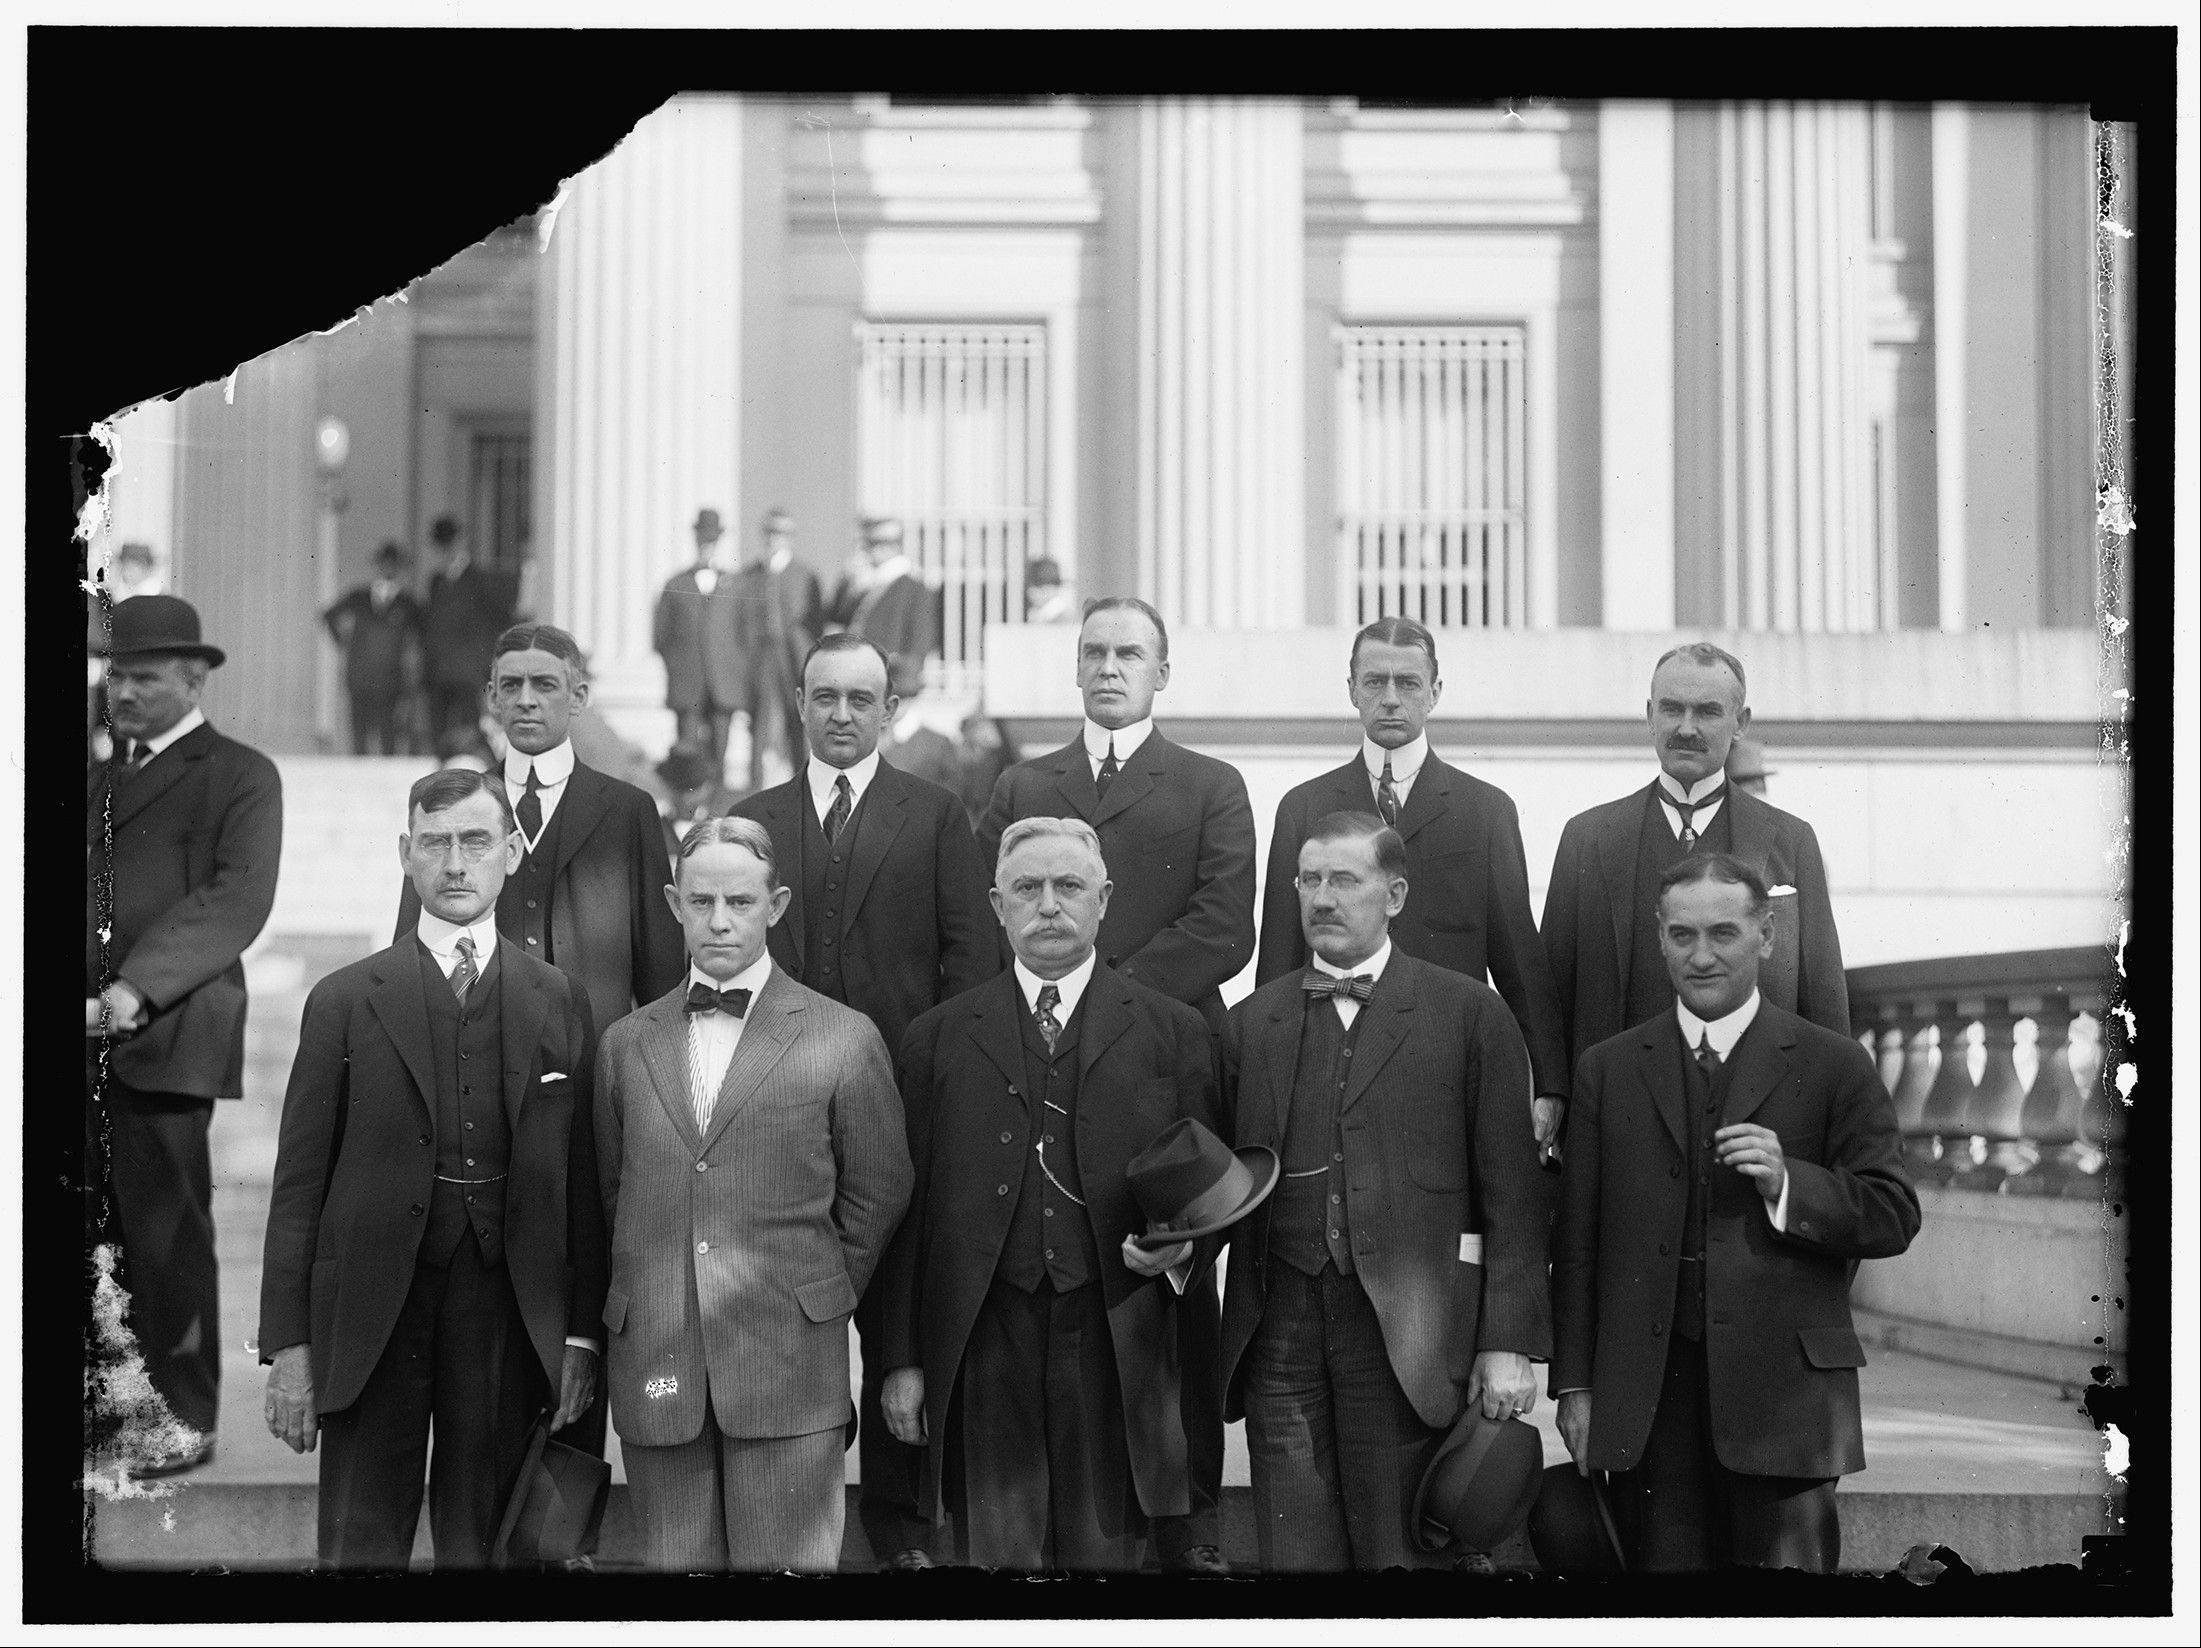 The original district governors of the Federal Reserve System are pictured here: Front row, from left, E. R. Francher, Cleveland, District 4; George J. Seay, Richmond, District. 5; Joseph A. McCord, Atlanta, District 6; Theodore Wold, Minneapolis, District 9; Charles M. Sawyer, Topeka, District 10. Back Row: Charles J. Rhoads, Philadelphia, District 3; Oscar Wells, Houston, District 11; Alfred L. Aiken, Boston, District 1; Benjamin Strong, New York, District 2; Archibald Kains, San Francisco, District 12.